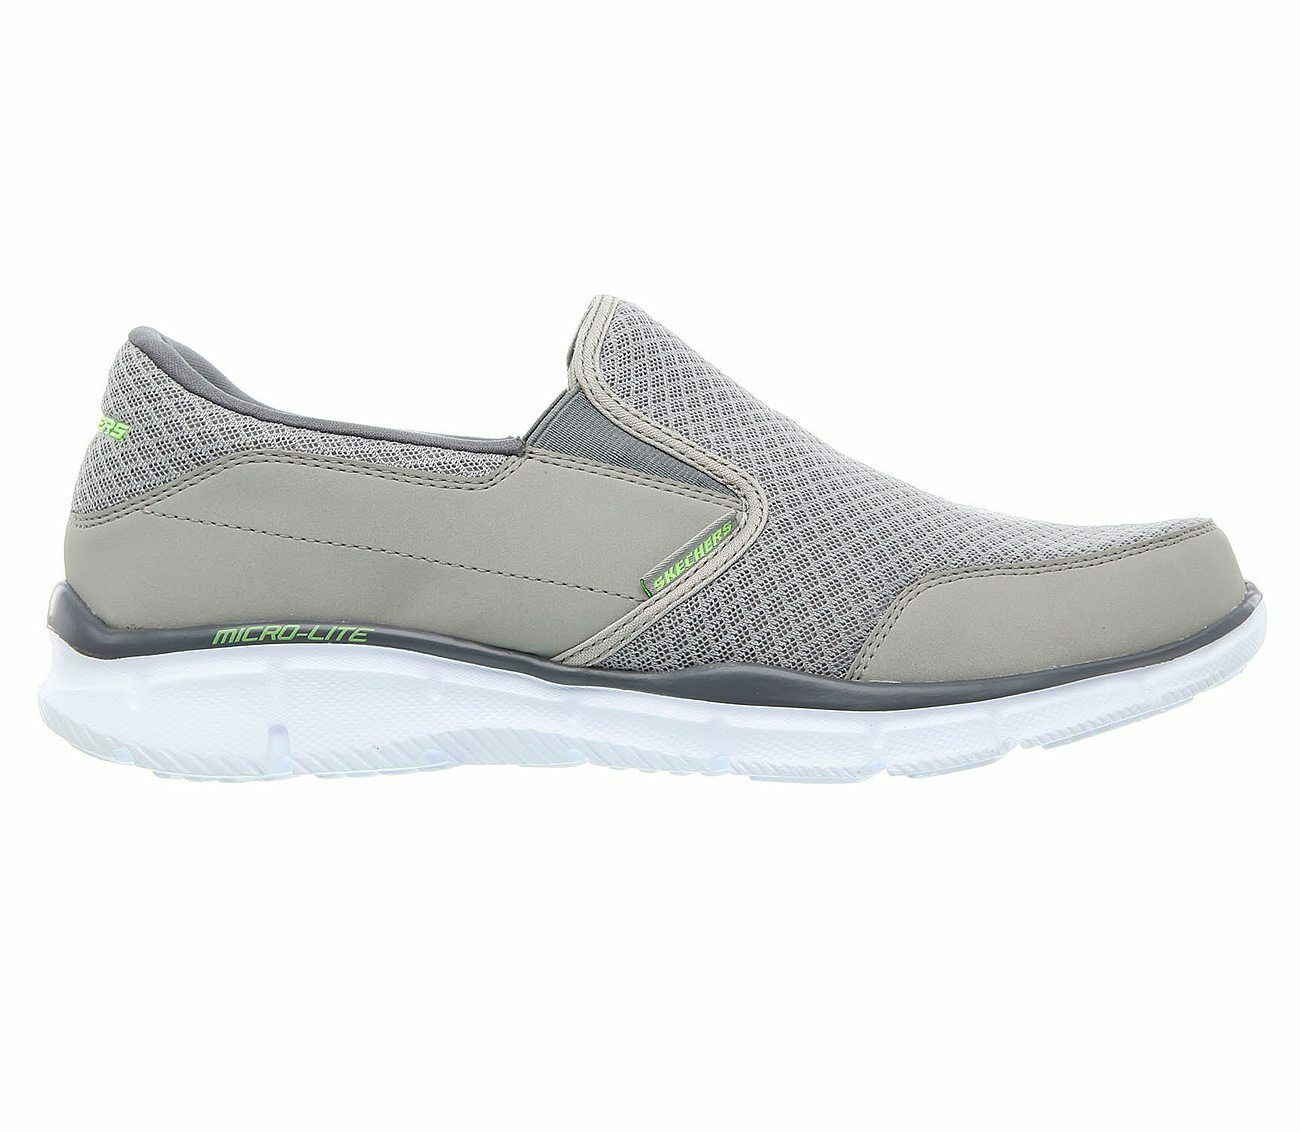 51361-GRY, Skechers Schuhe – Equalizer-Persistent grau, Herren, 2018, Textil